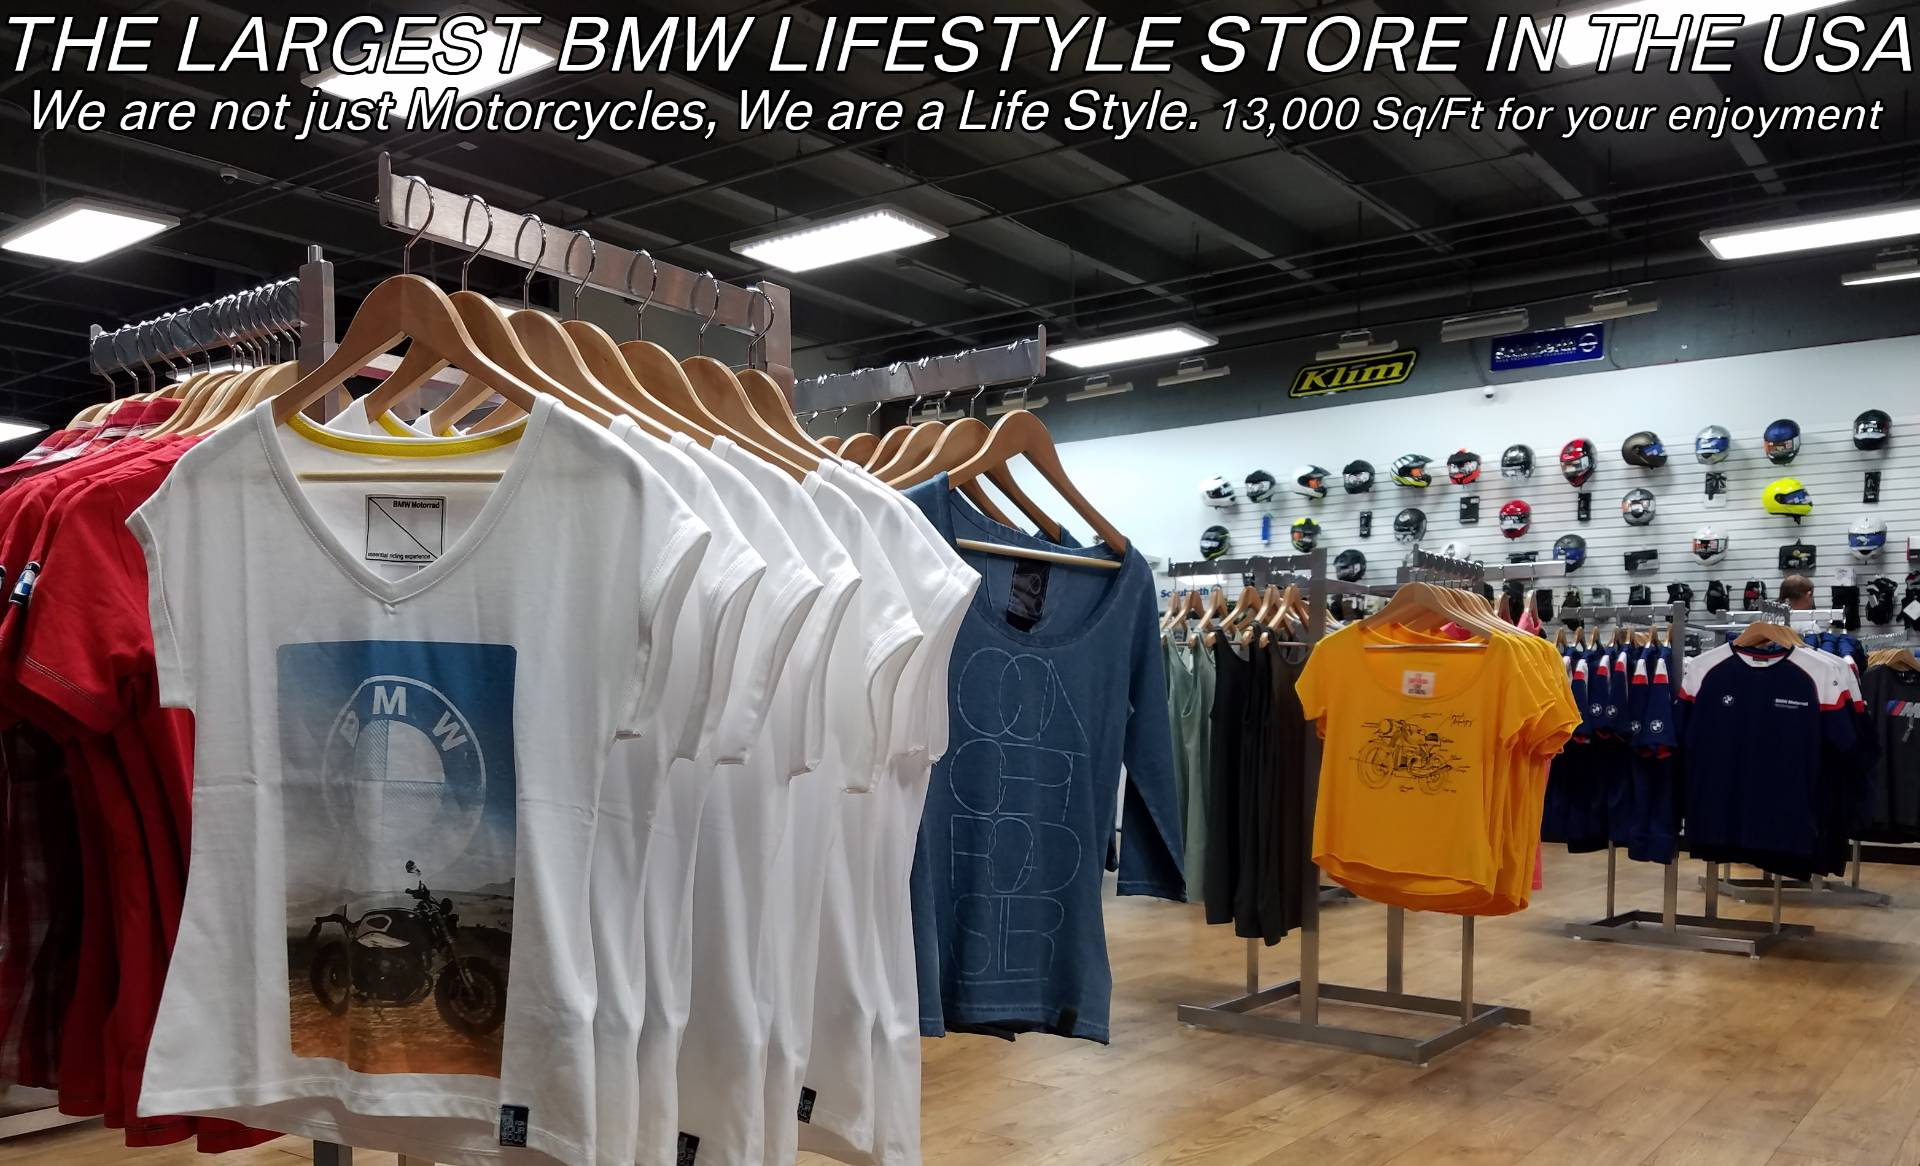 BMW Motorcycles of Miami, Motorcycles of Miami, Motorcycles Miami, New Motorcycles, Used Motorcycles, pre-owned. #BMWMotorcyclesOfMiami #MotorcyclesOfMiami. - Photo 27